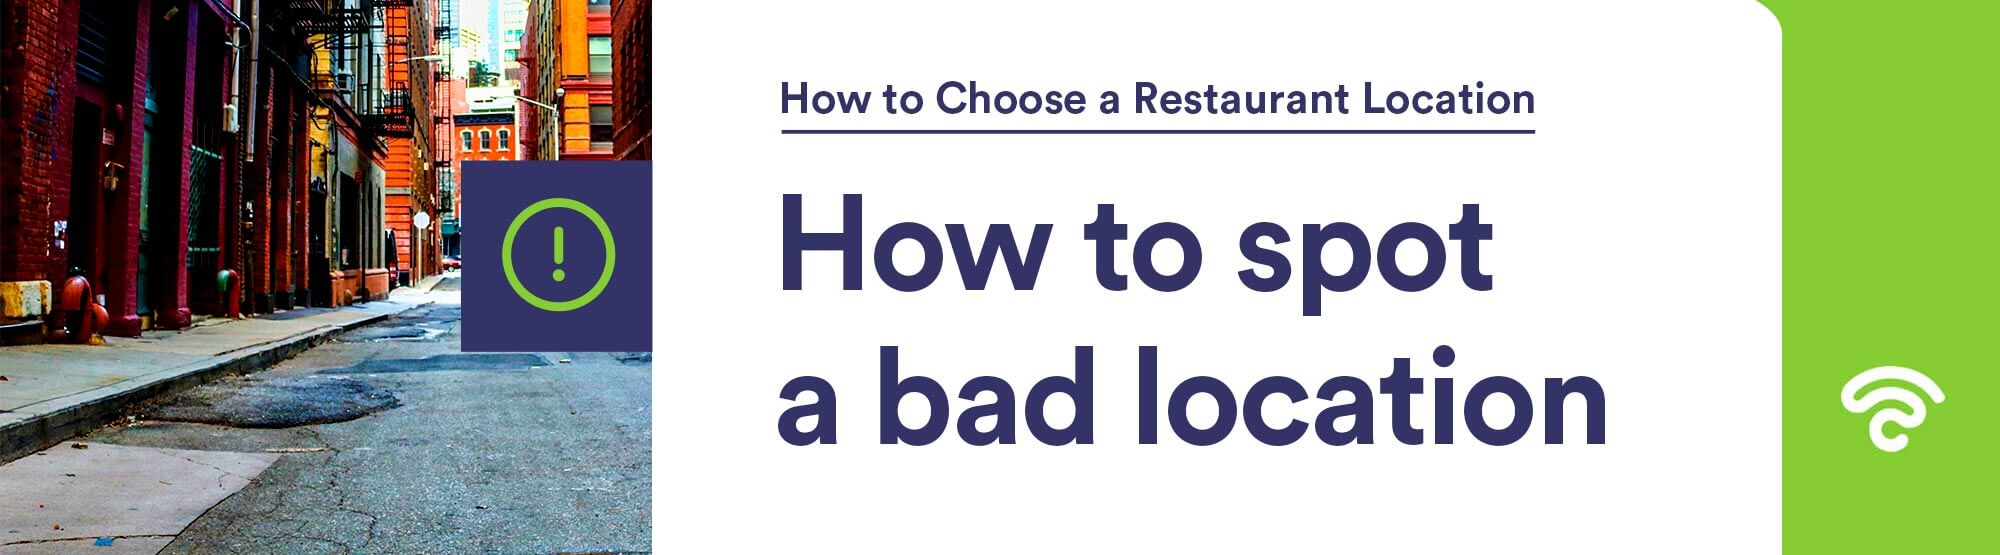 how to spot bad restaurant location